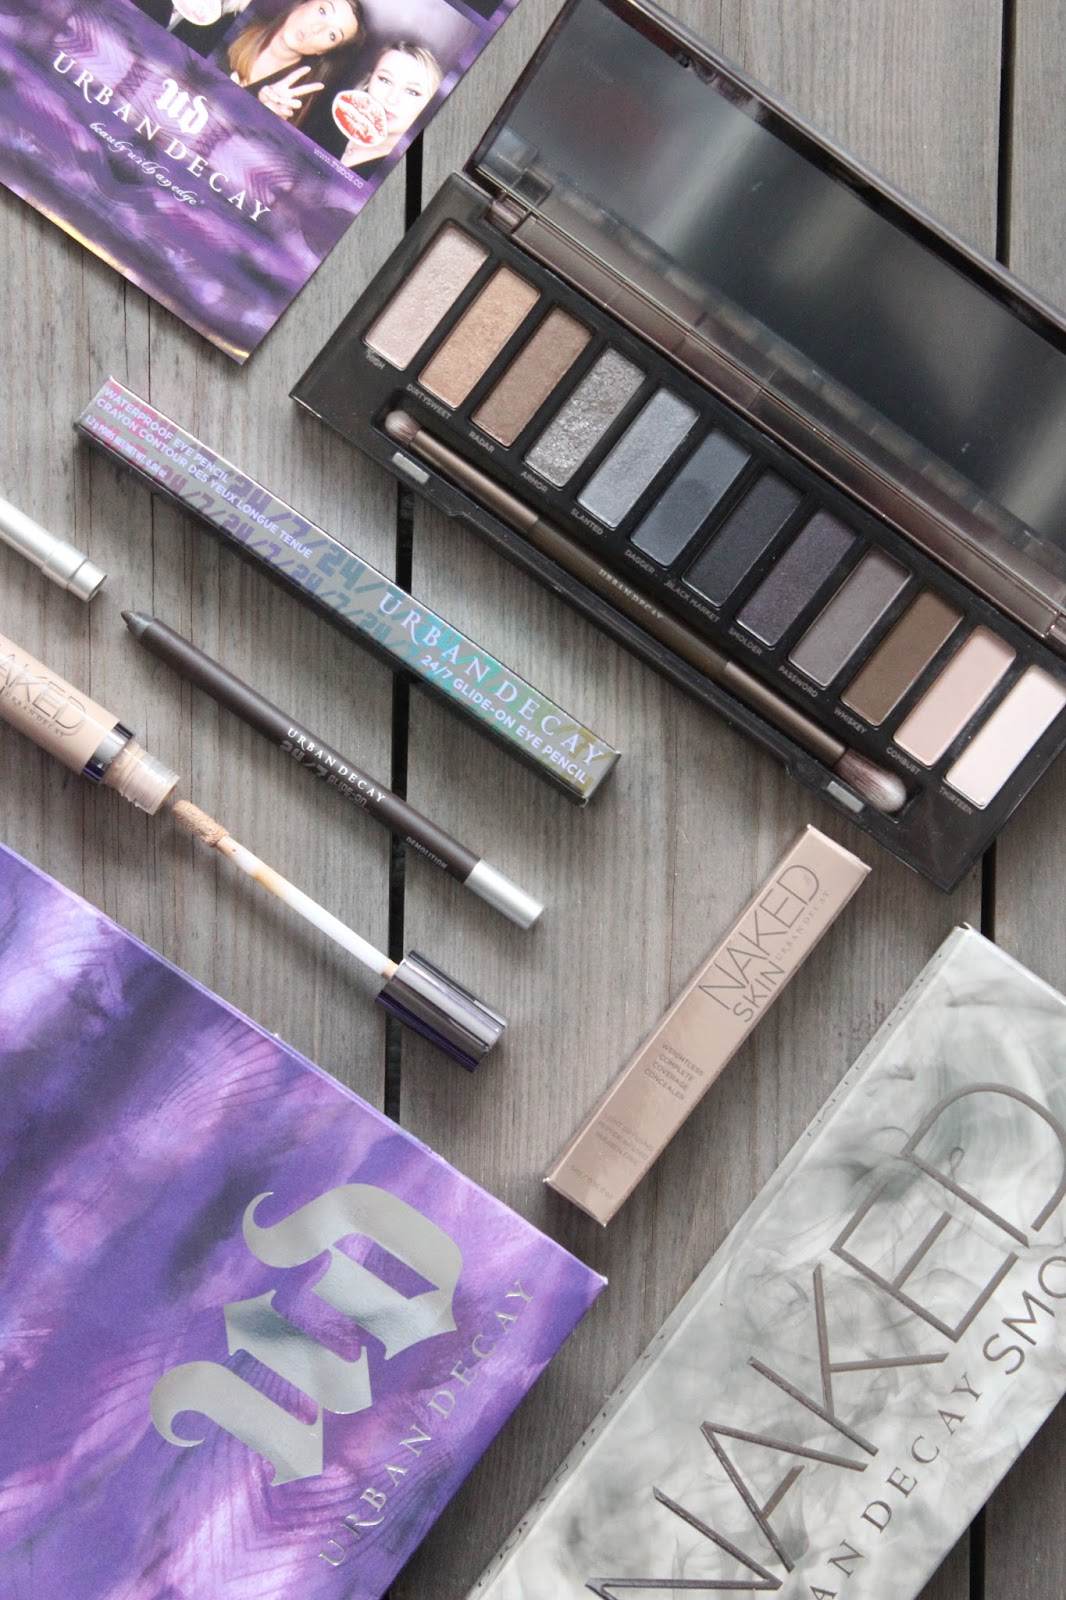 Mini Urban Decay Haul & First Impressions